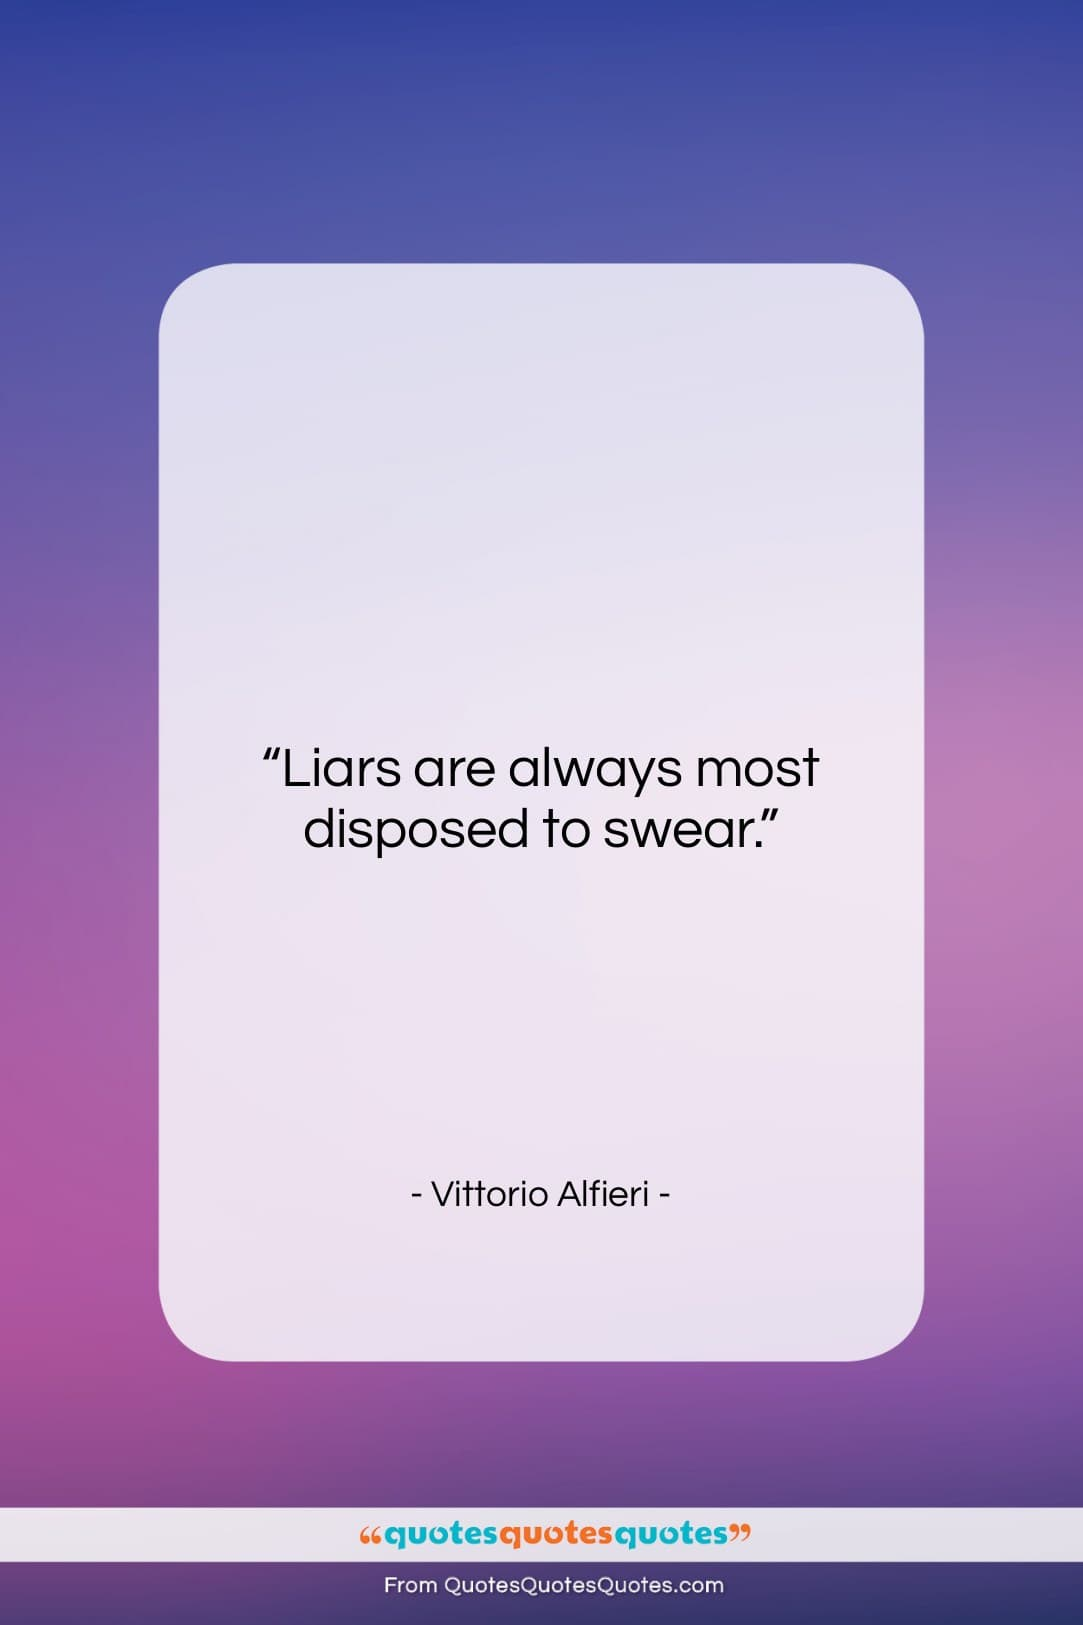 """Vittorio Alfieri quote: """"Liars are always most disposed to swear….""""- at QuotesQuotesQuotes.com"""